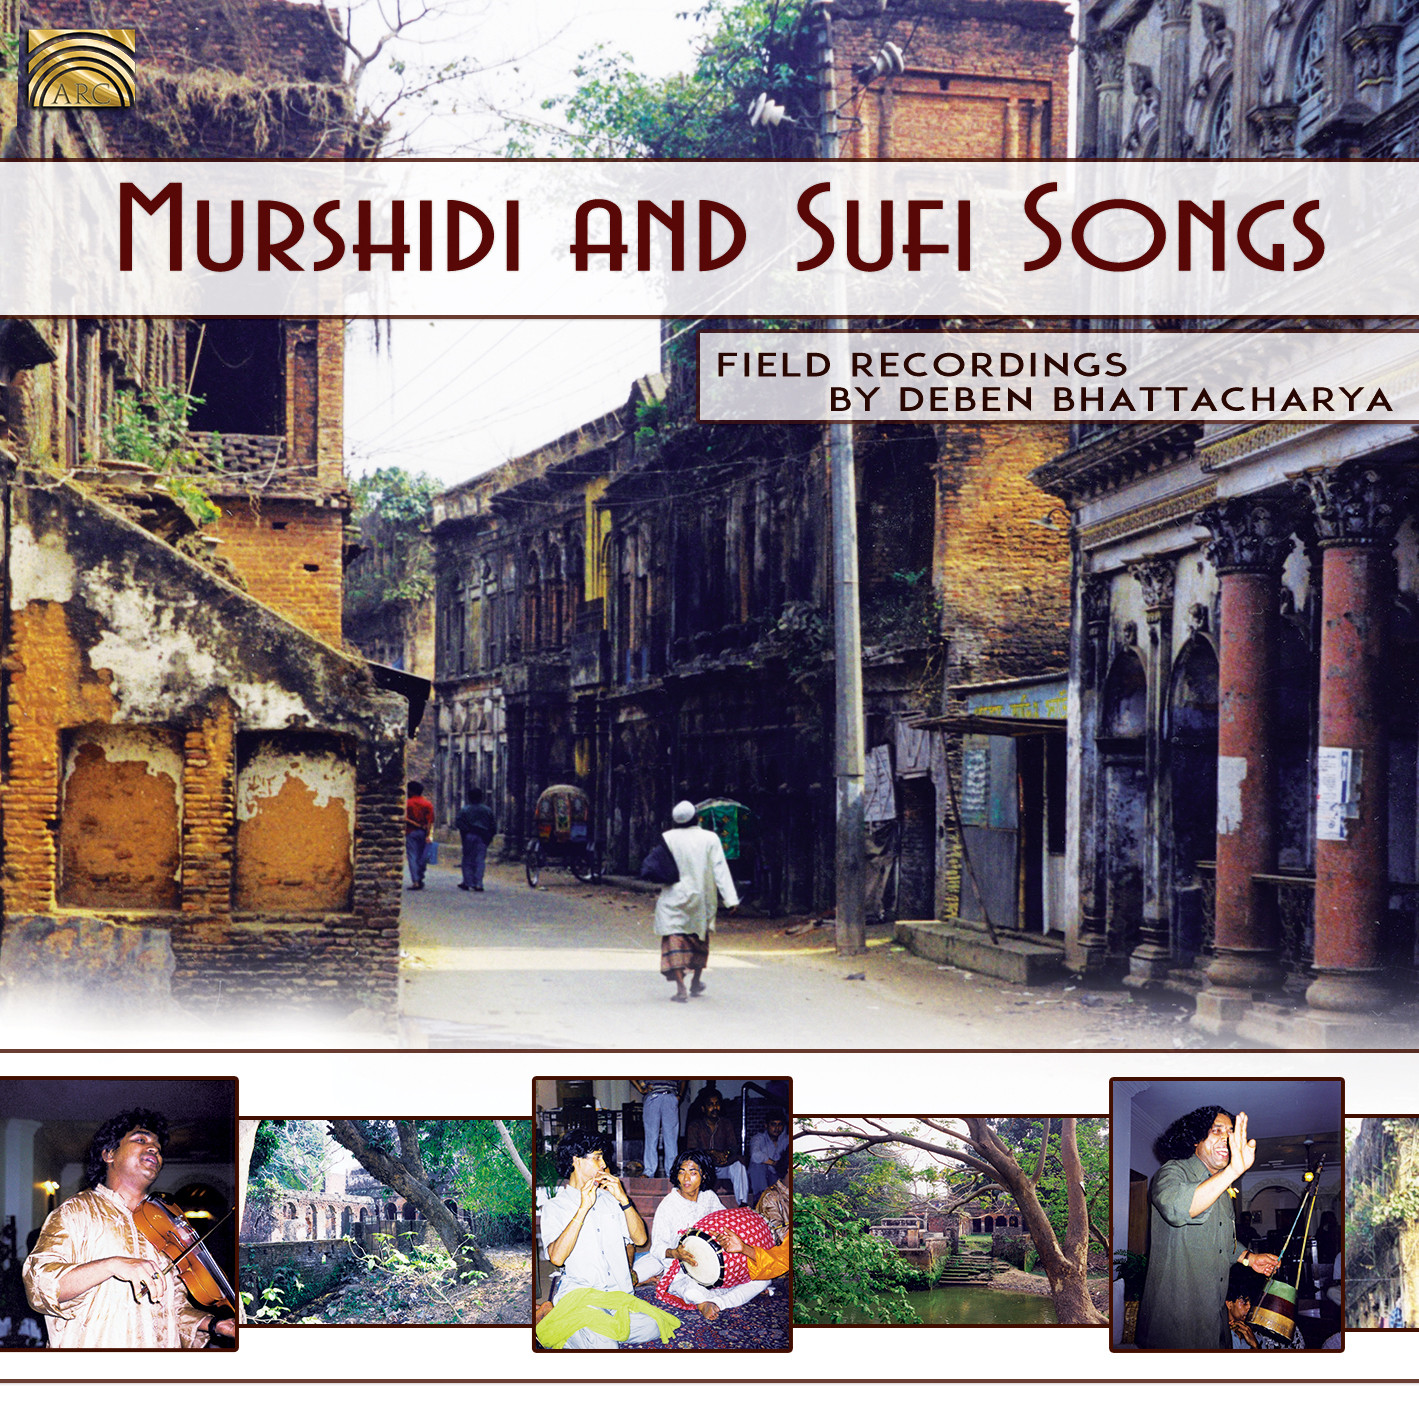 EUCD2555 Murshidi and Sufi Songs - Field recordings by Deben Bhattacharya